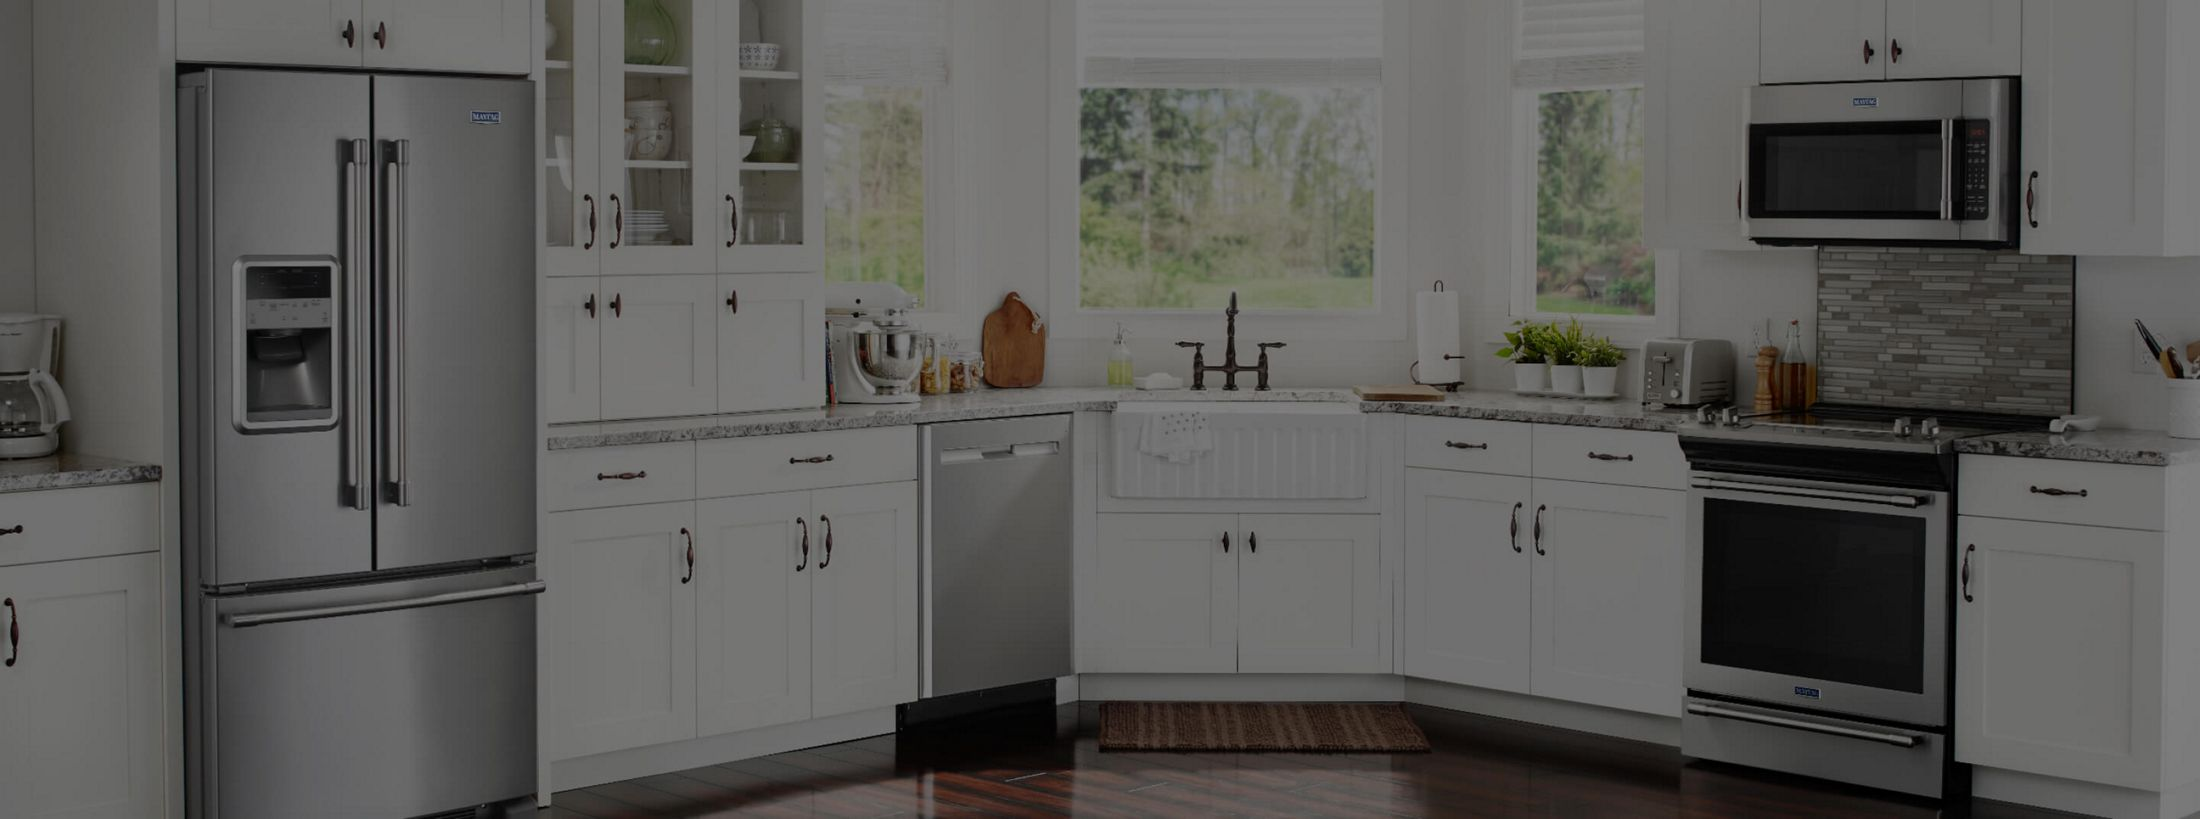 A kitchen equipped with Maytag® appliances.